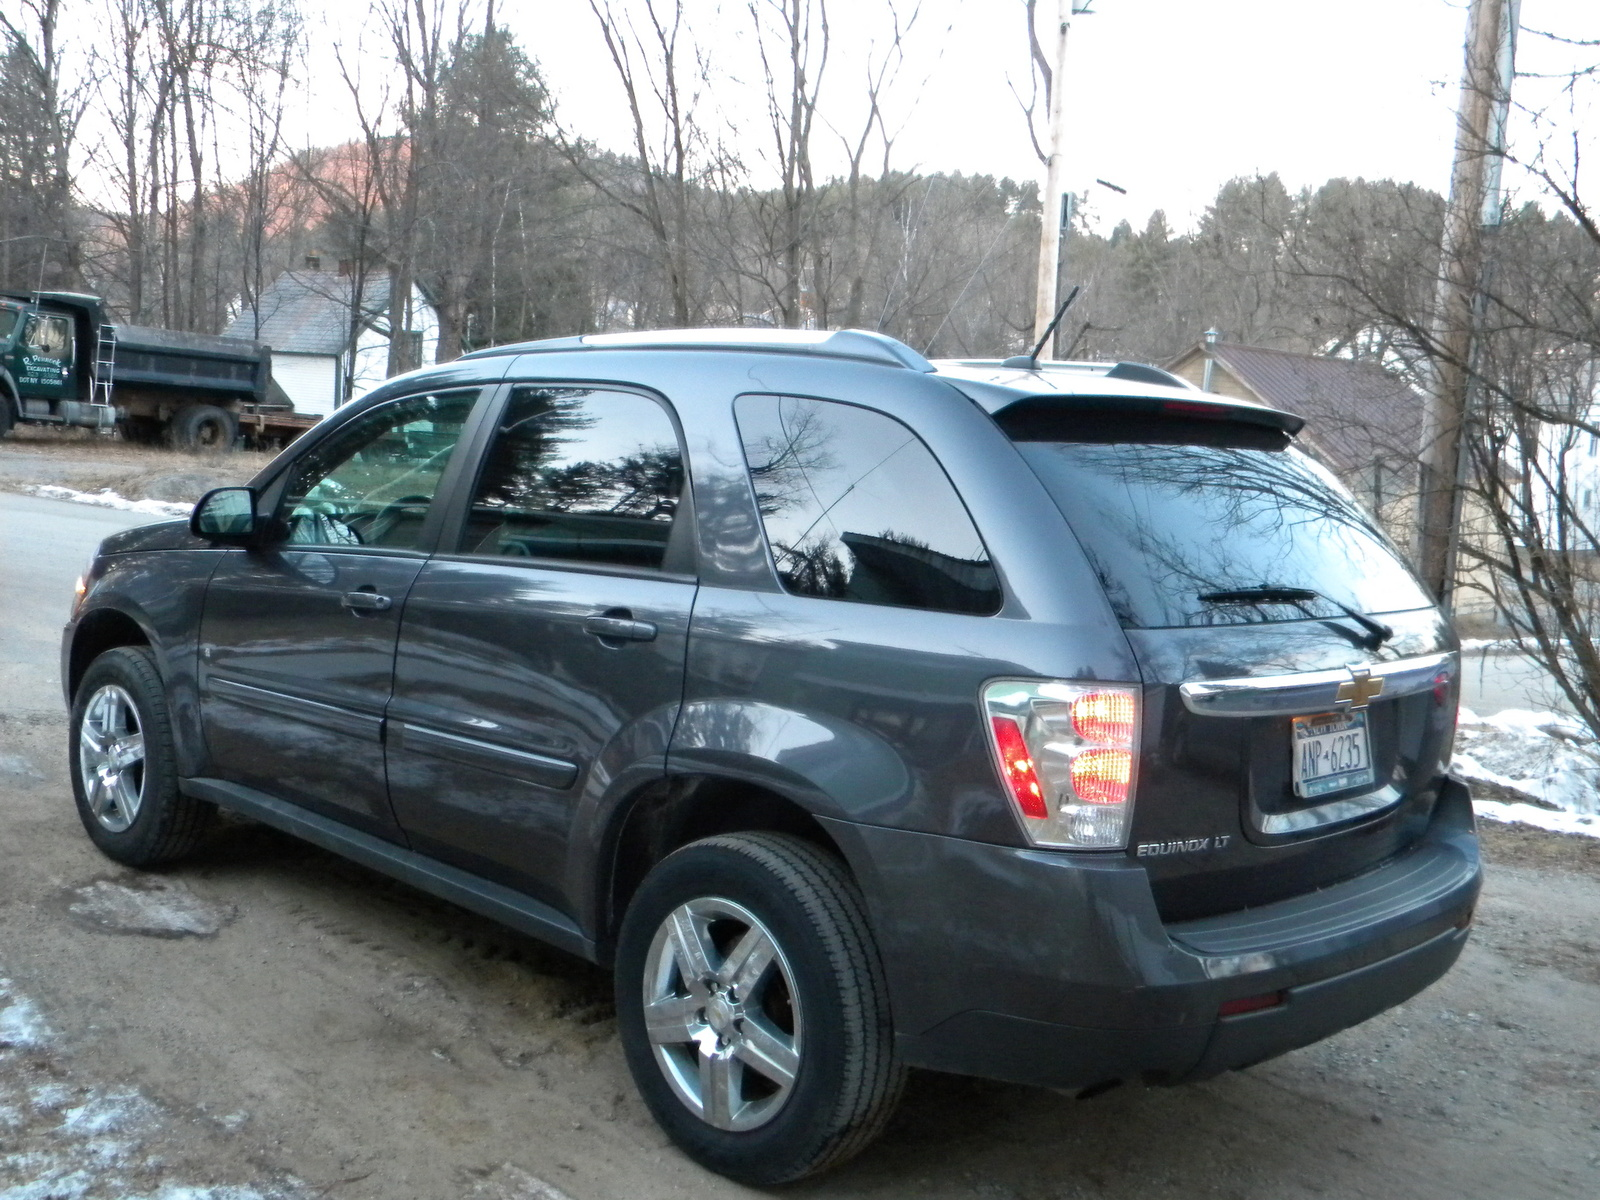 2008 chevrolet equinox lt2 picture exterior. Cars Review. Best American Auto & Cars Review